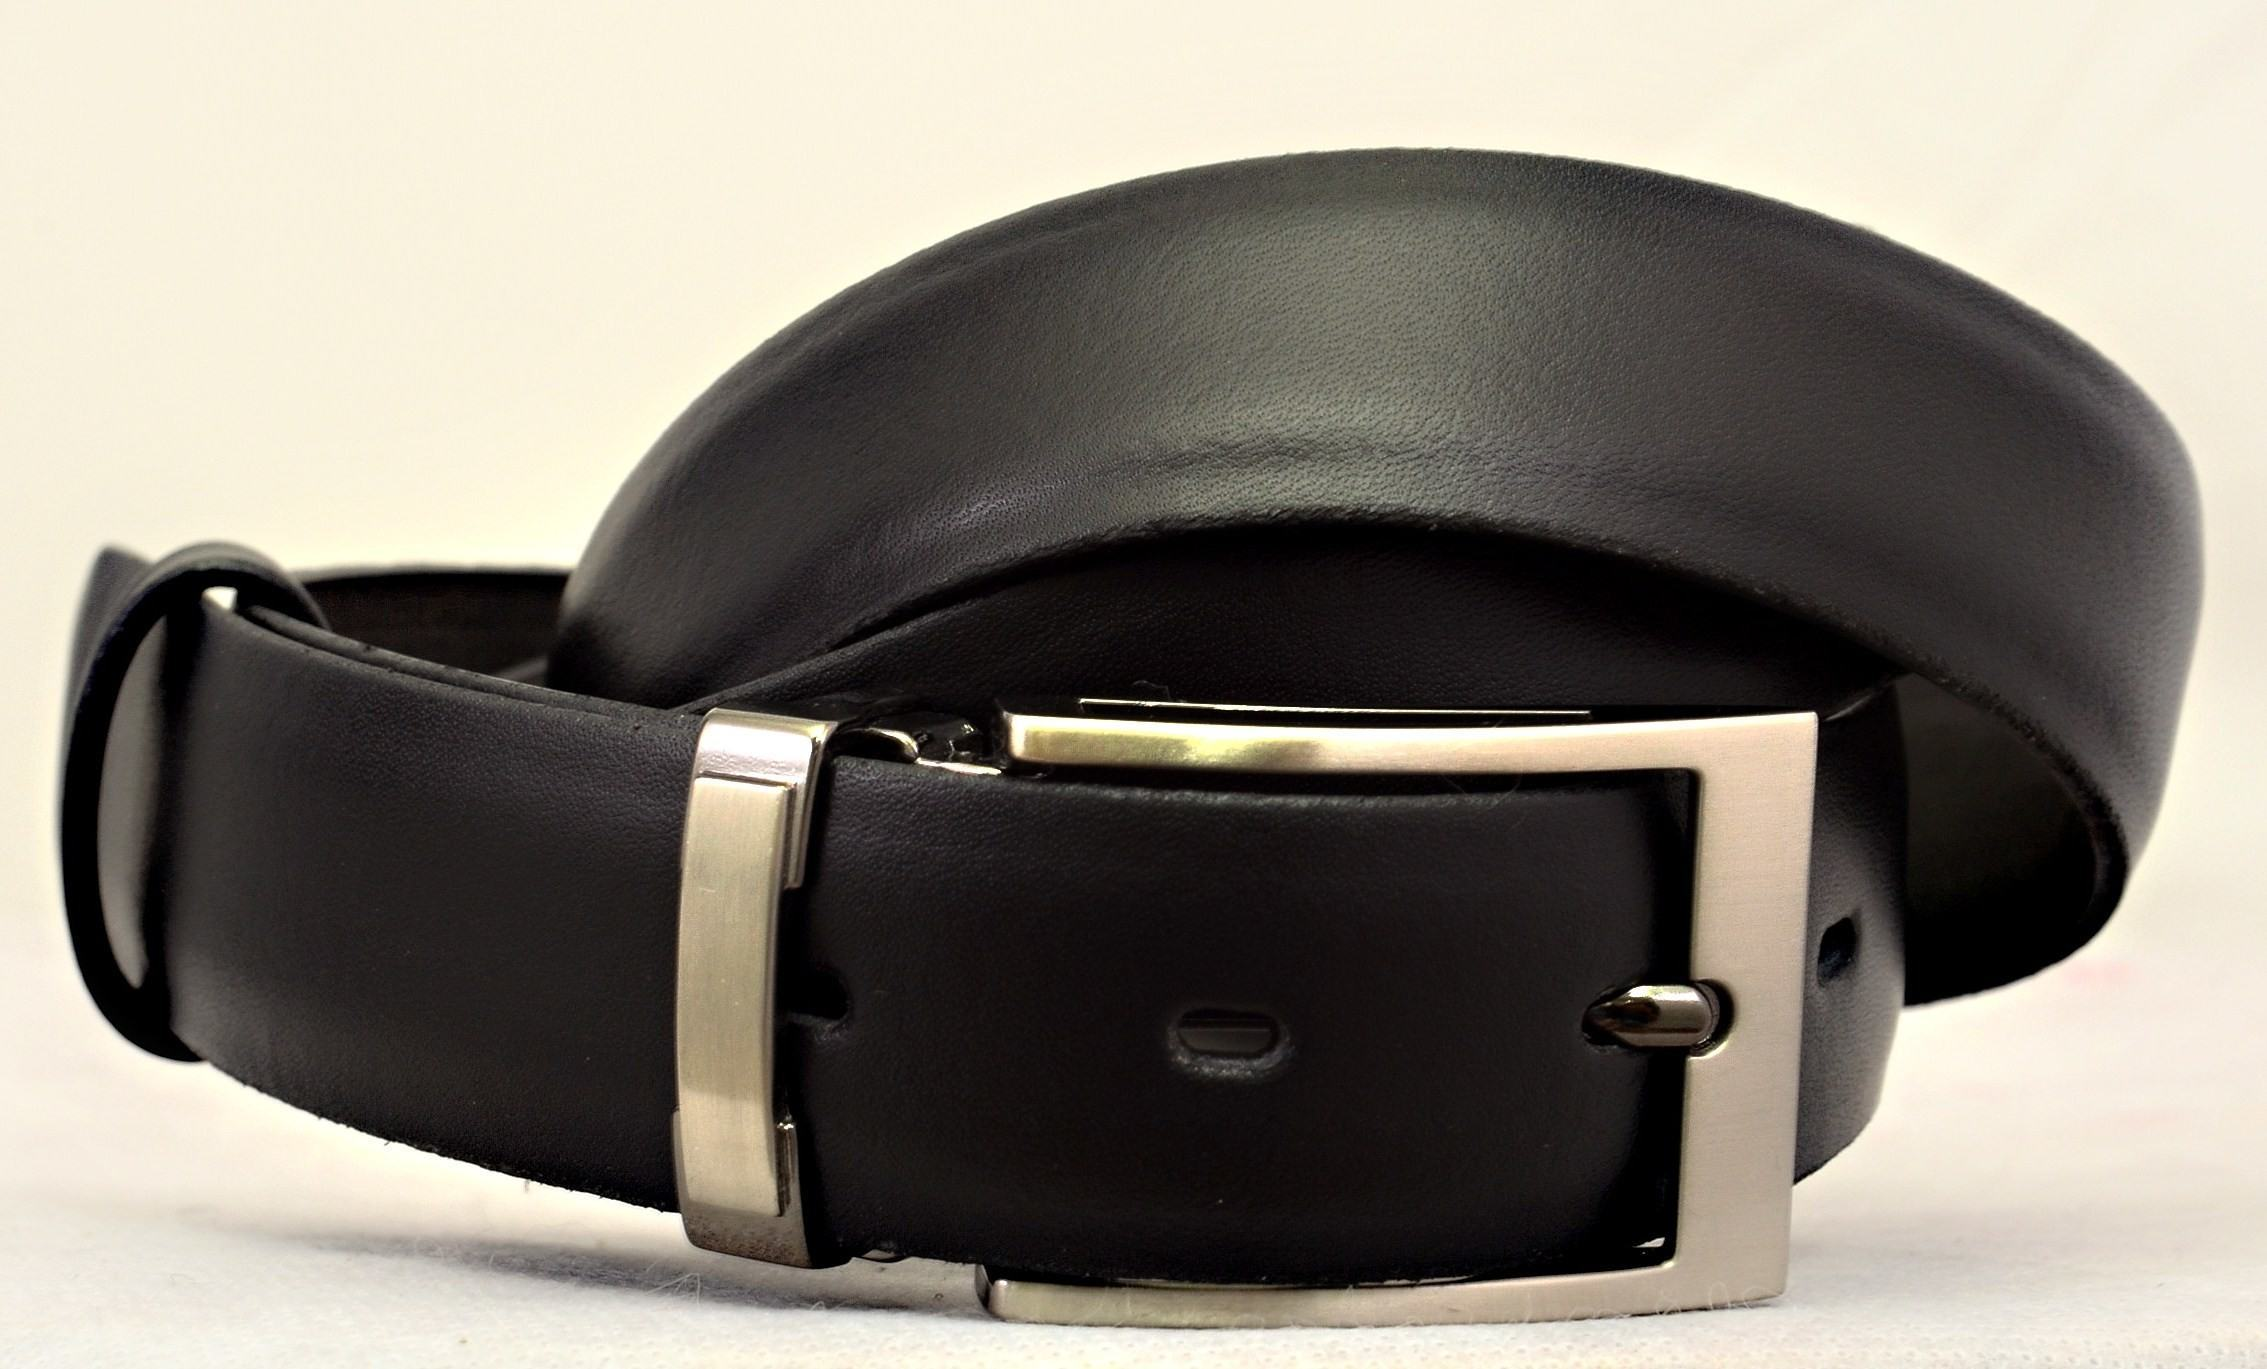 2_belt Essential Men's Fashion Pieces for Both Business and Casual Wear